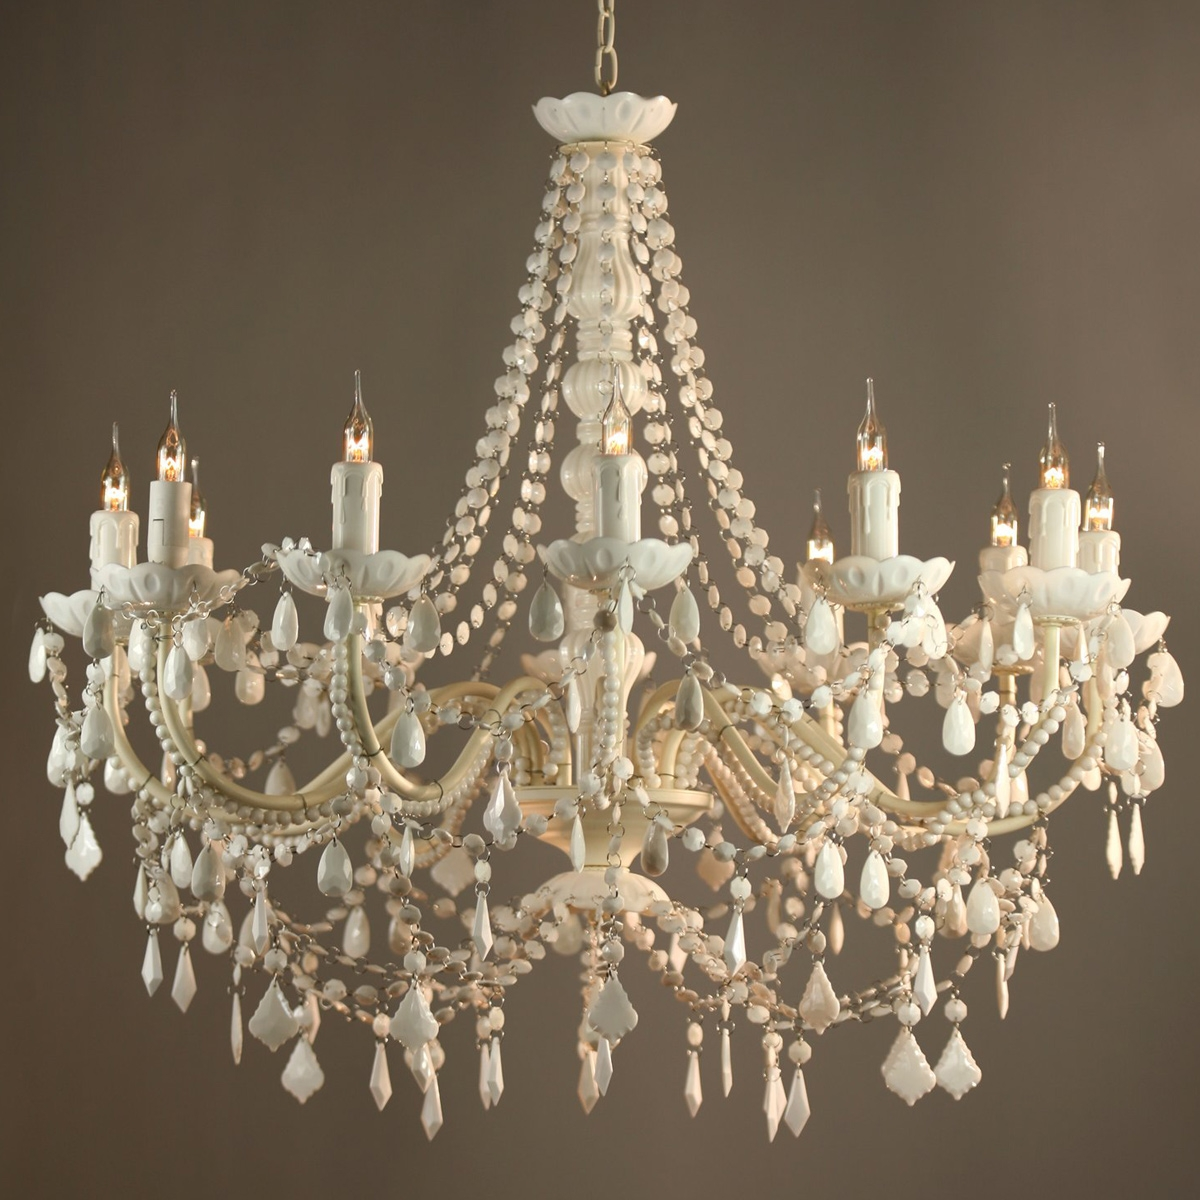 Antique White Chandelier Within Chandeliers Vintage (#1 of 12)